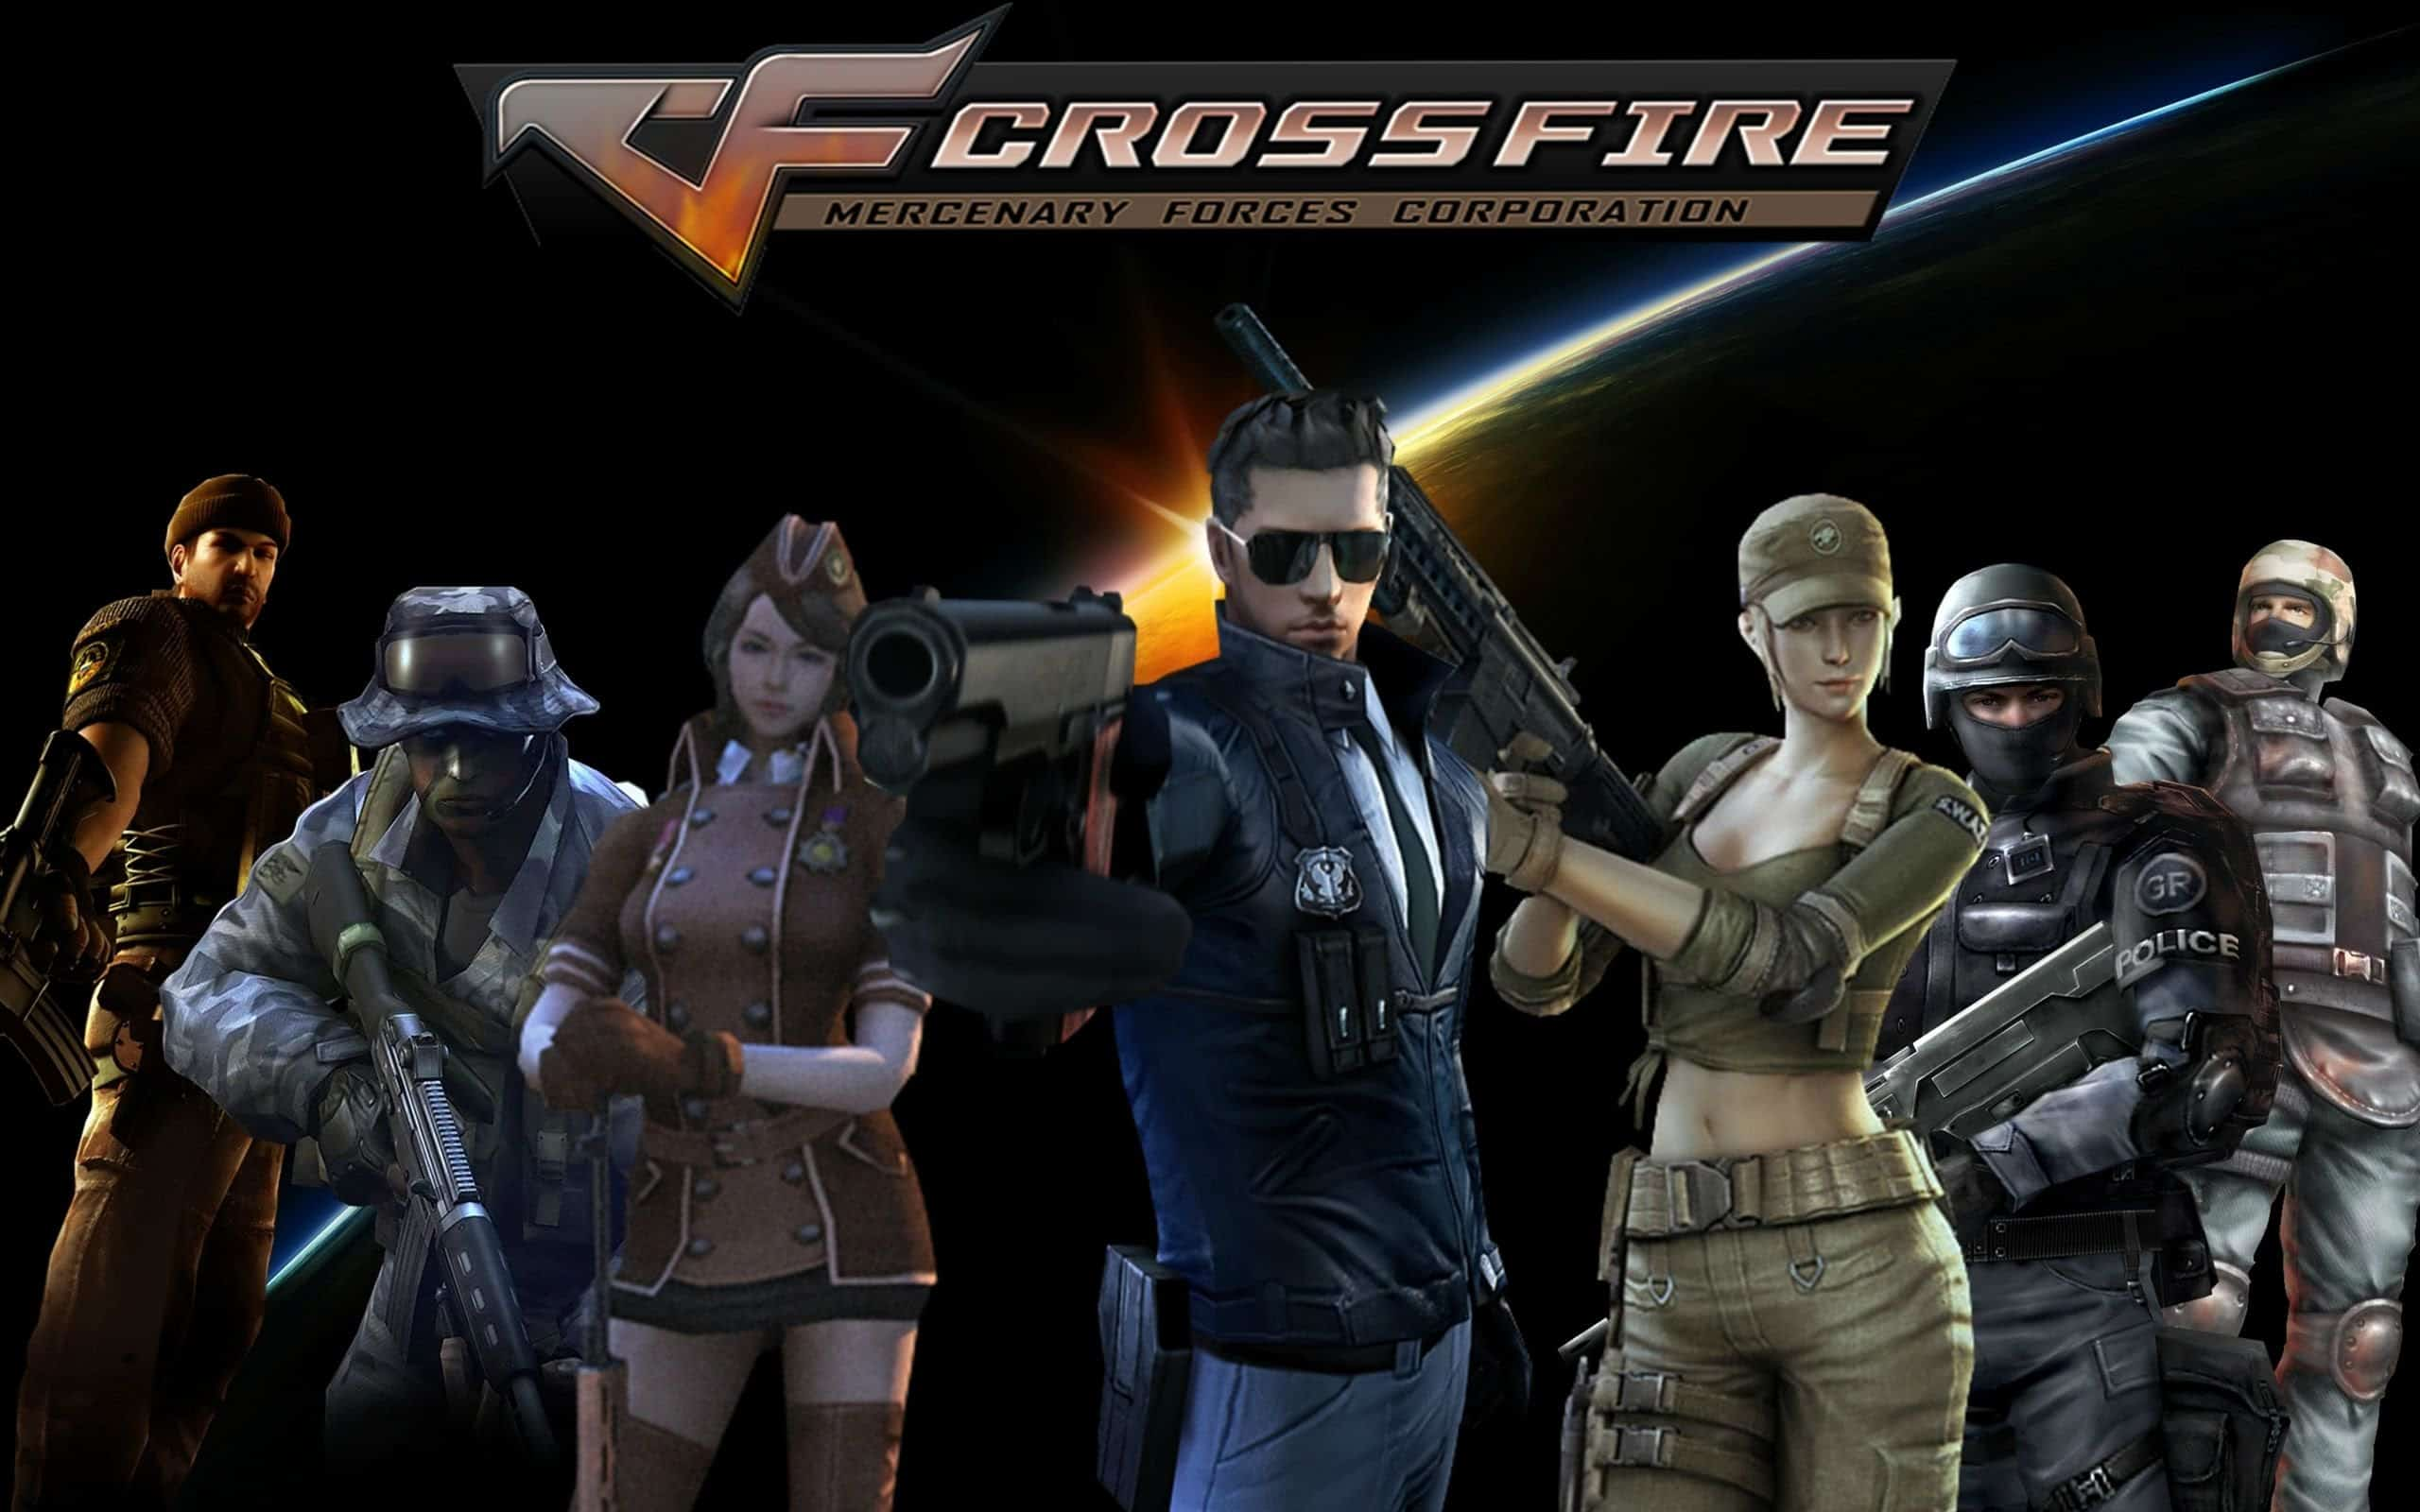 Cross Fire, CF legends, CF là gì